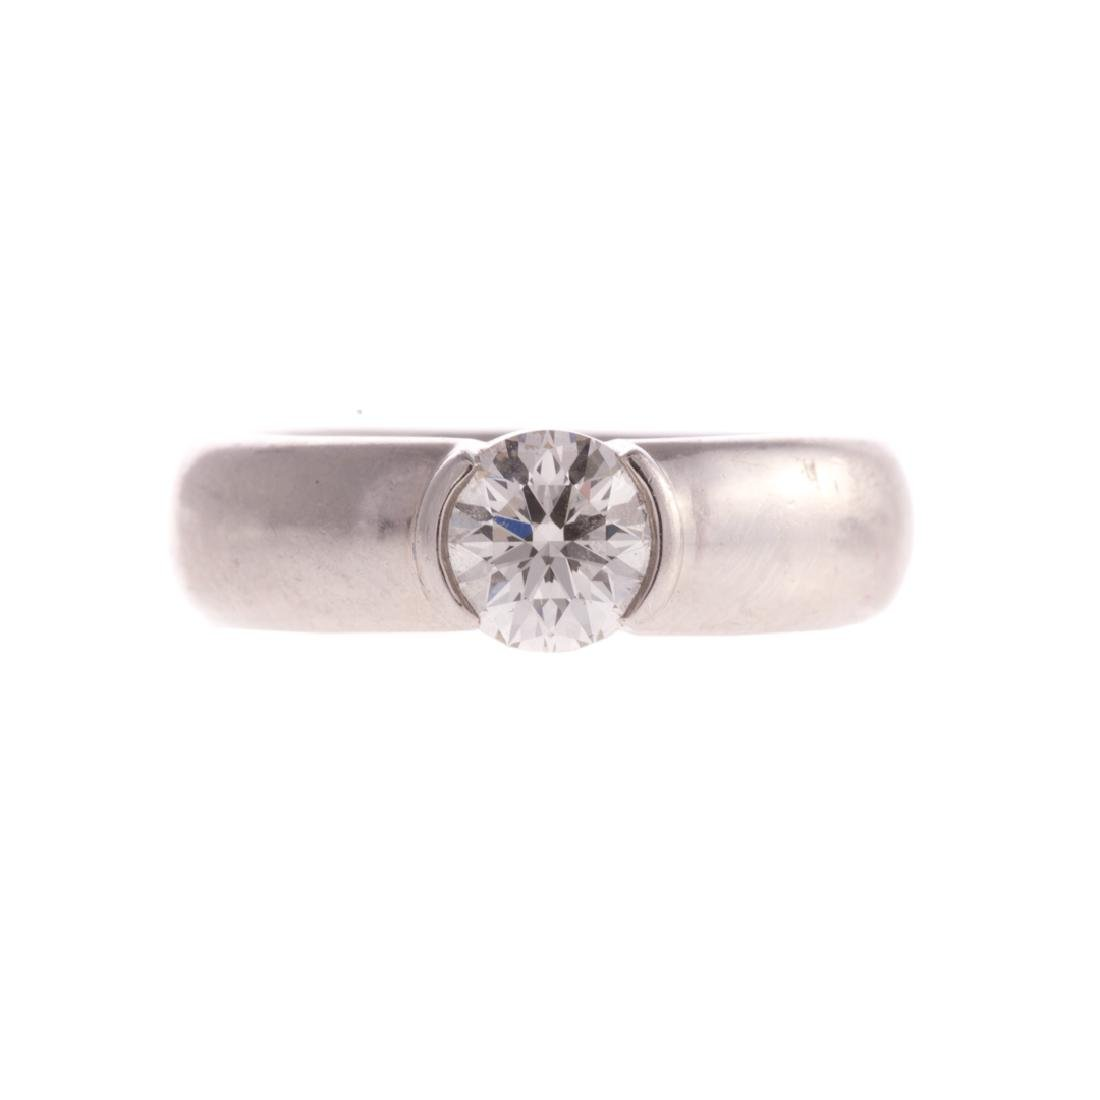 A Platinum 1.12ct Etoile Ring by Tiffany & Co